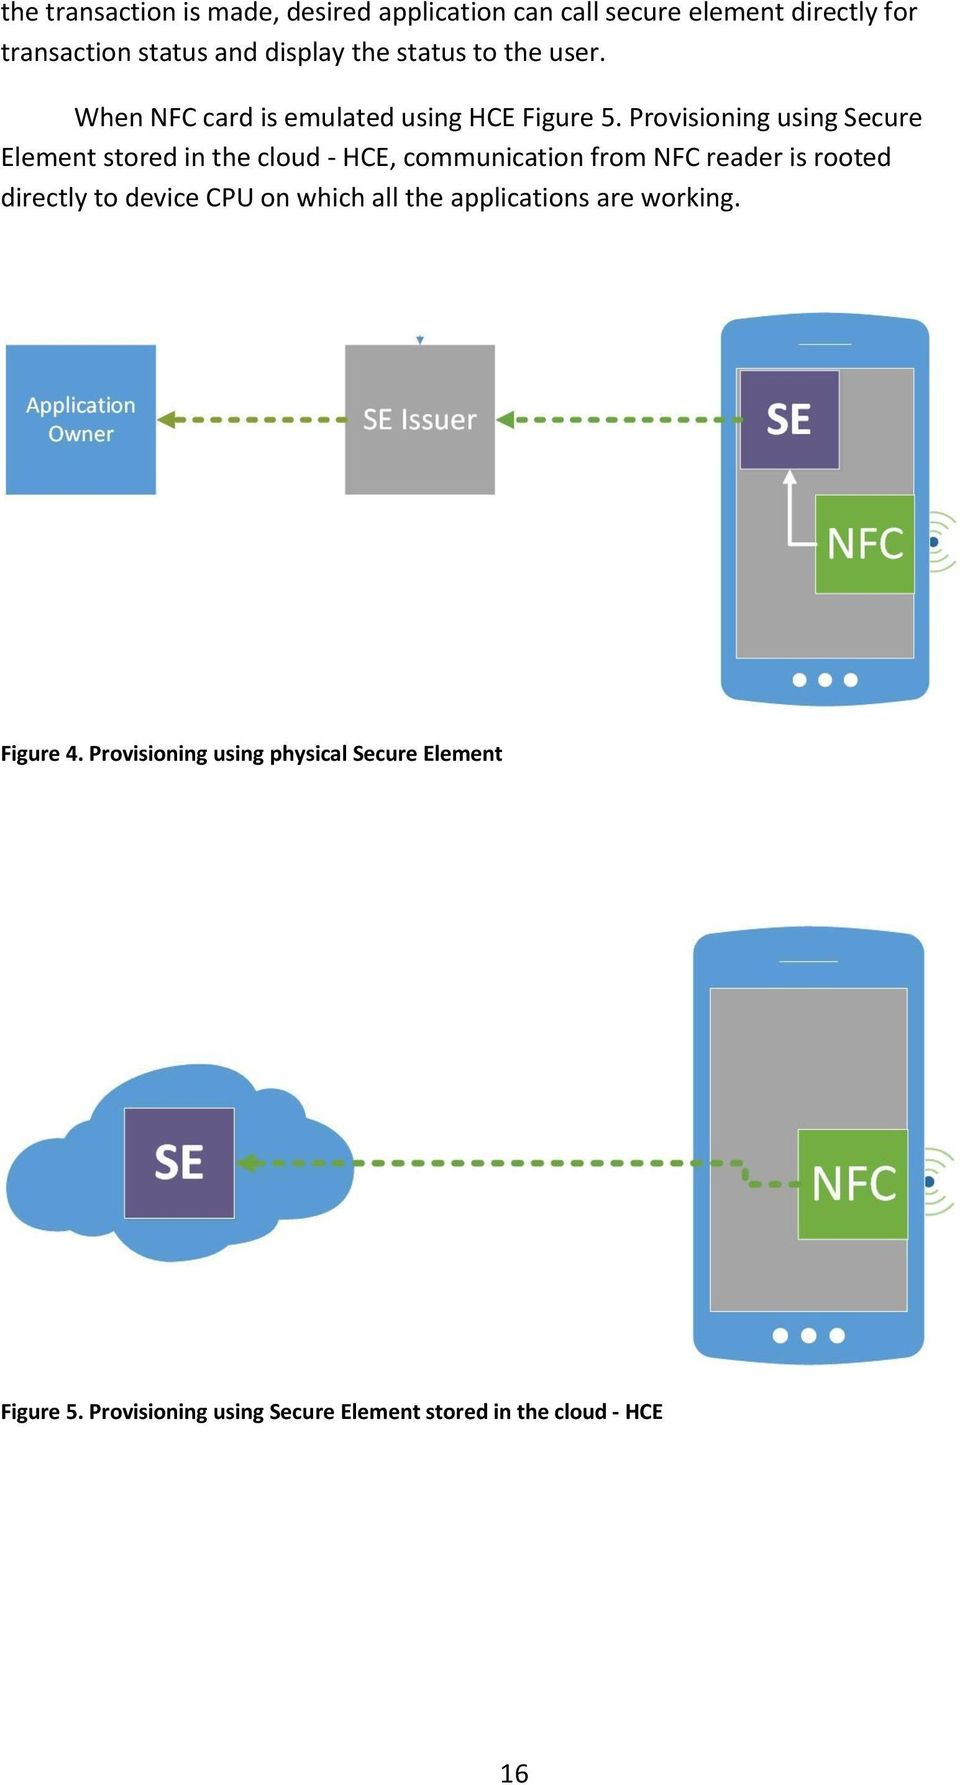 Mobile Payment using HCE and mpoint payment gateway based on NFC